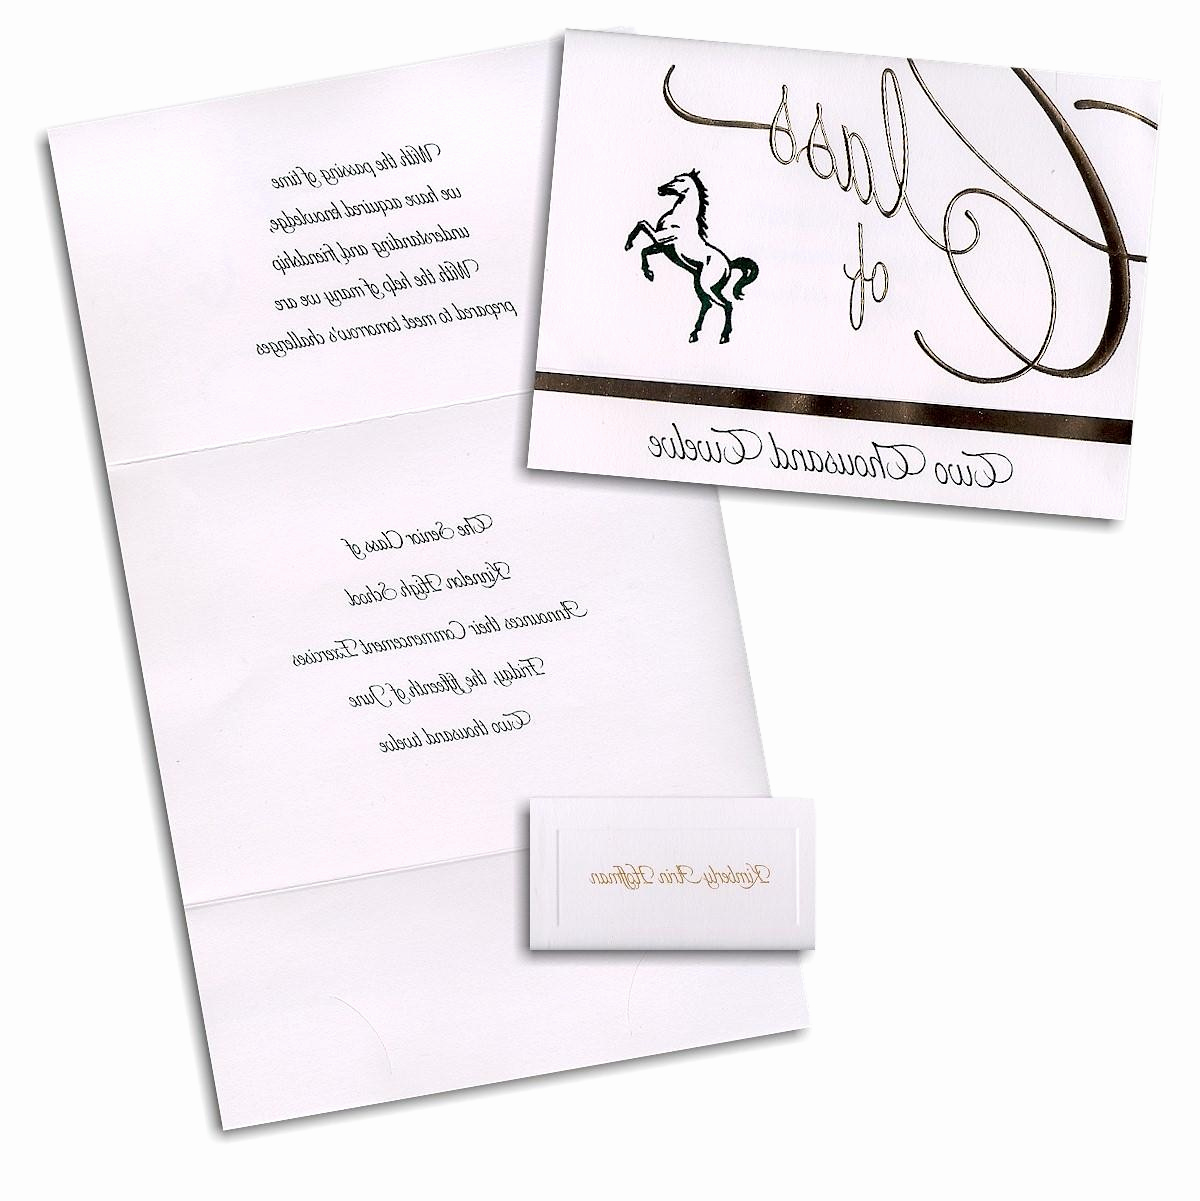 Joint Graduation Party Invitation Wording New Party Invitations Cards High School Graduation Party